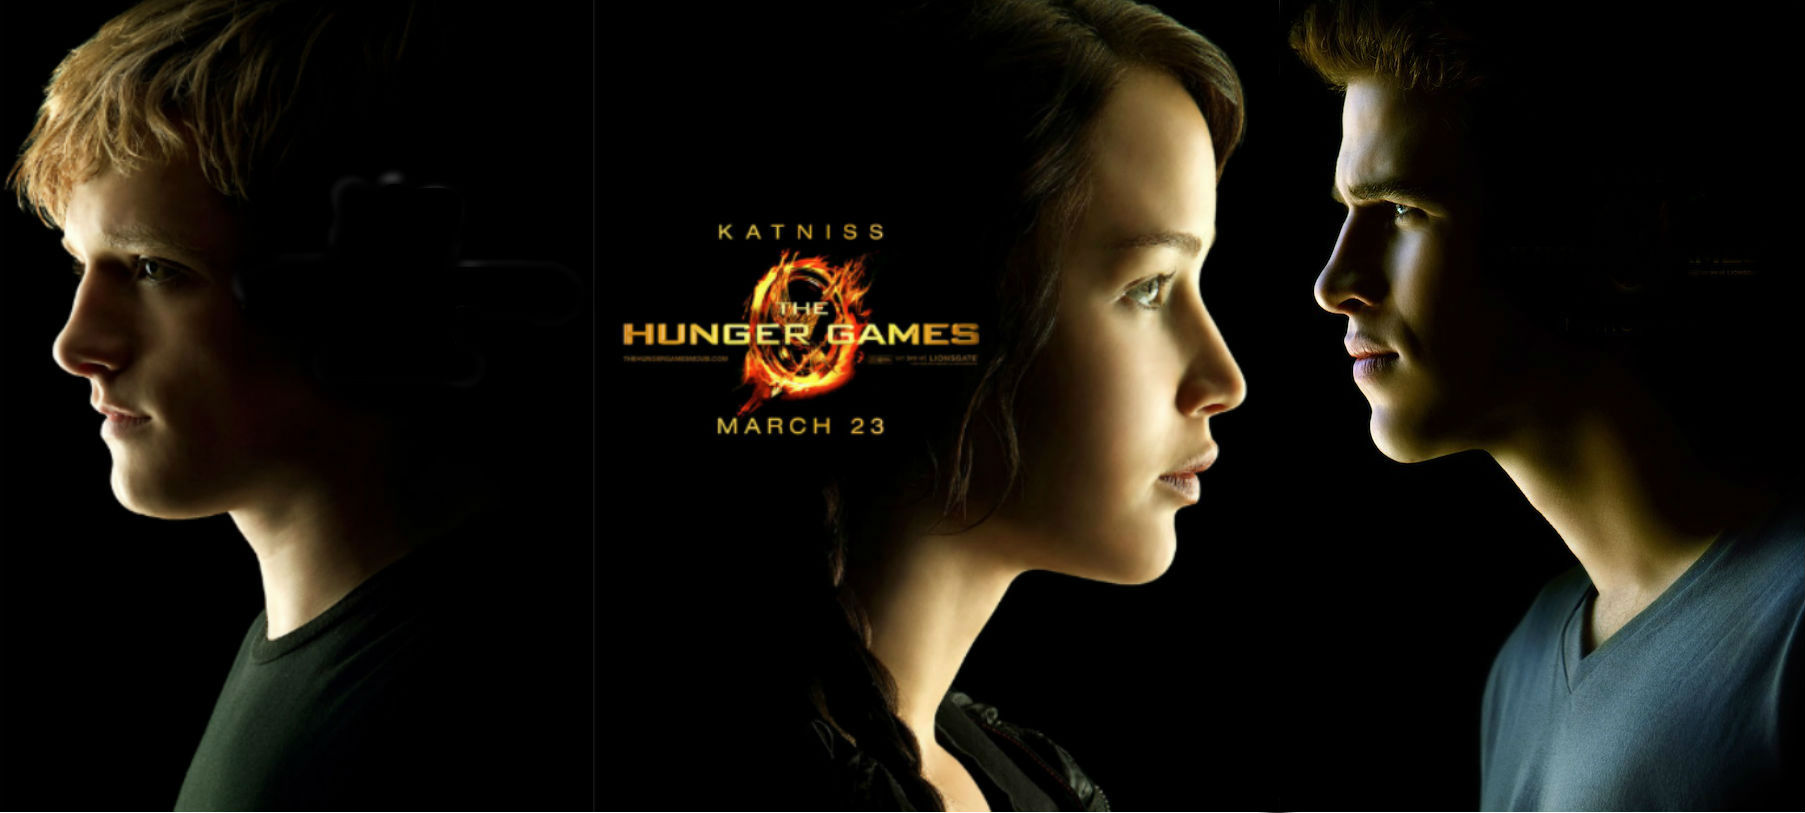 10 Observations About The Hunger Games Cinefille